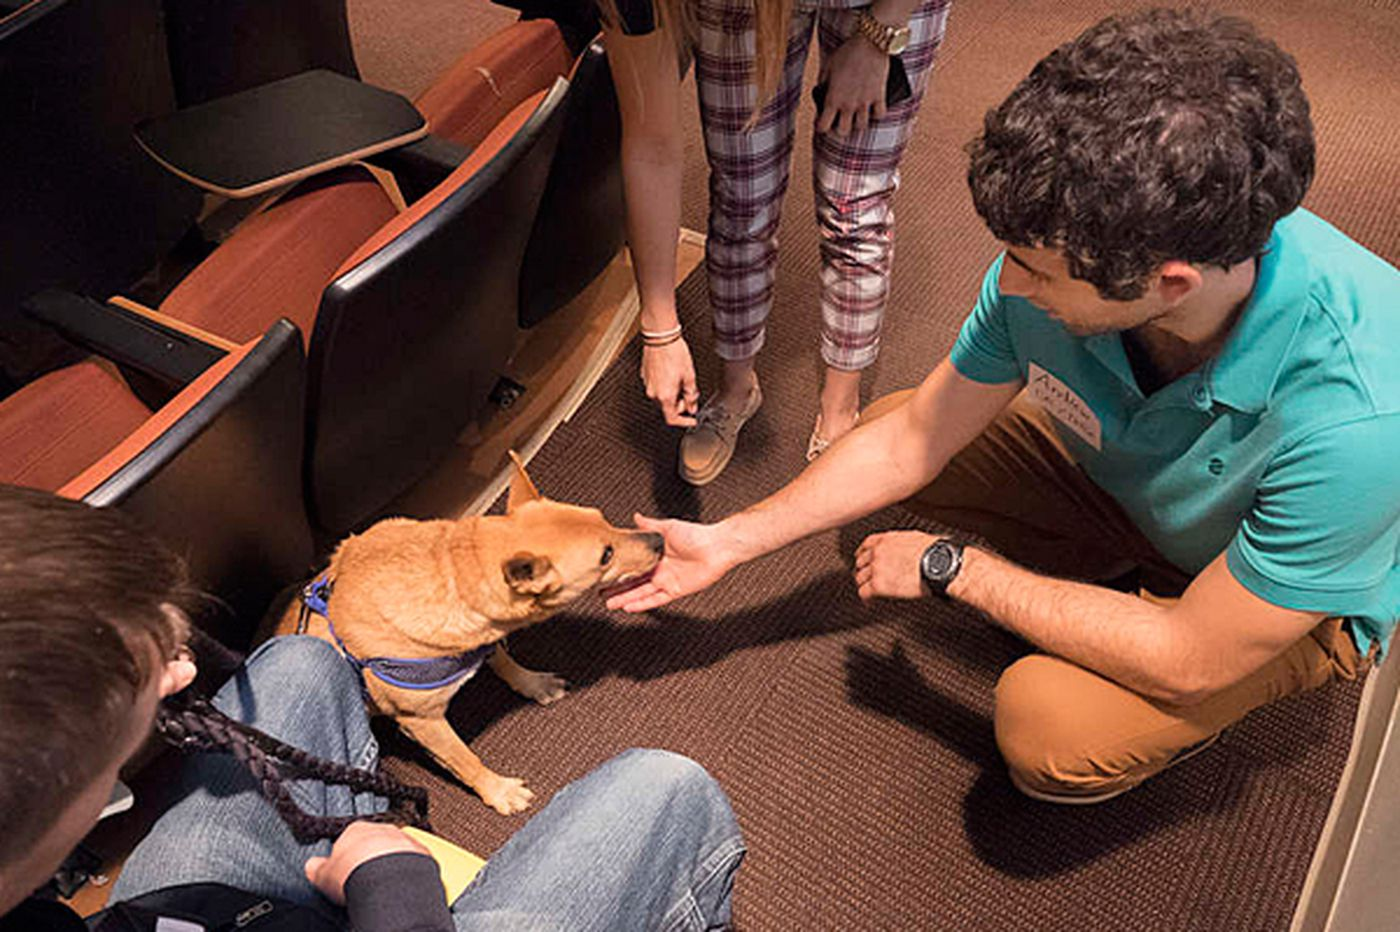 At Drexel, a therapy dog has a devoted student following